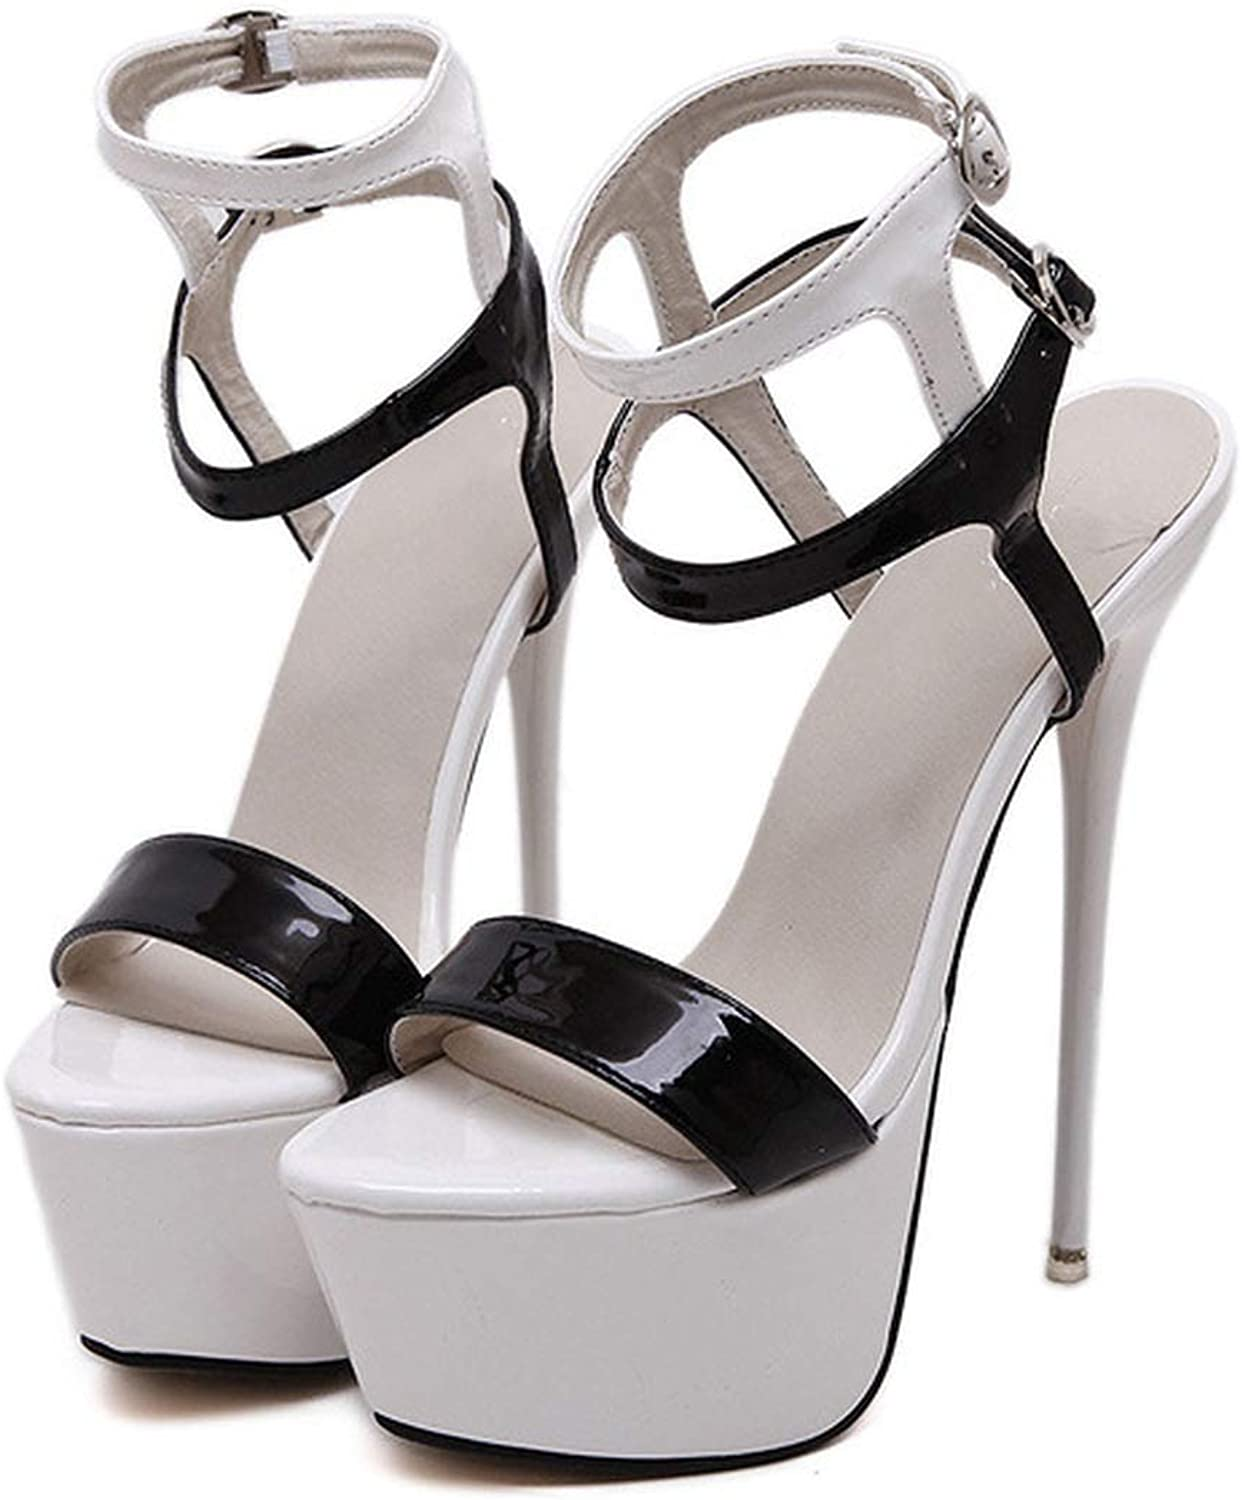 Ultra High Heels shoes Platform Sandals Open Toe Ankle Strap Party Sandals